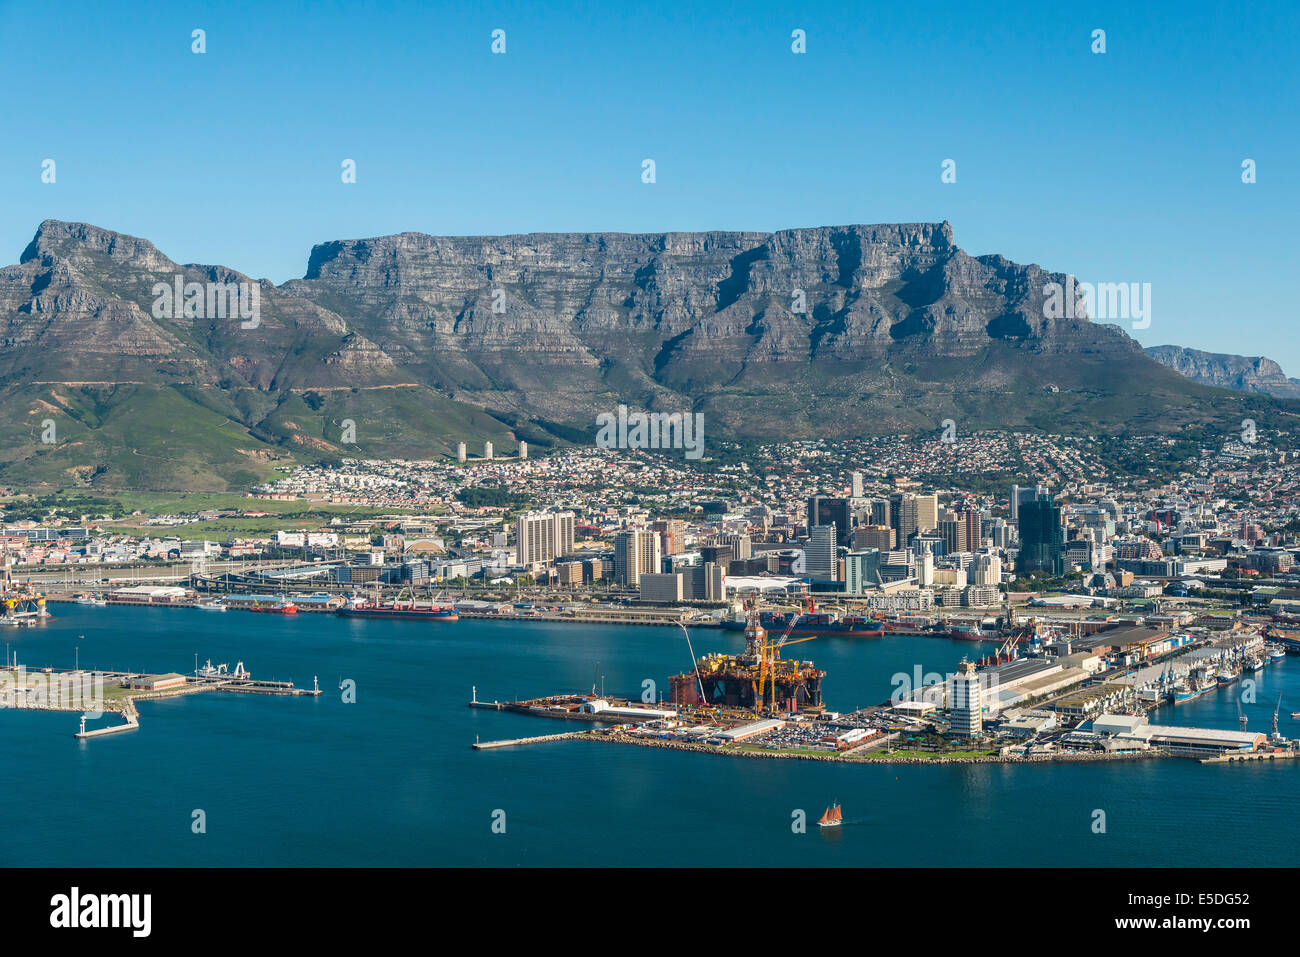 Aerial view, harbour, Devil's Peak and Table Mountain at the back, Cape Town, Western Cape, South Africa - Stock Image